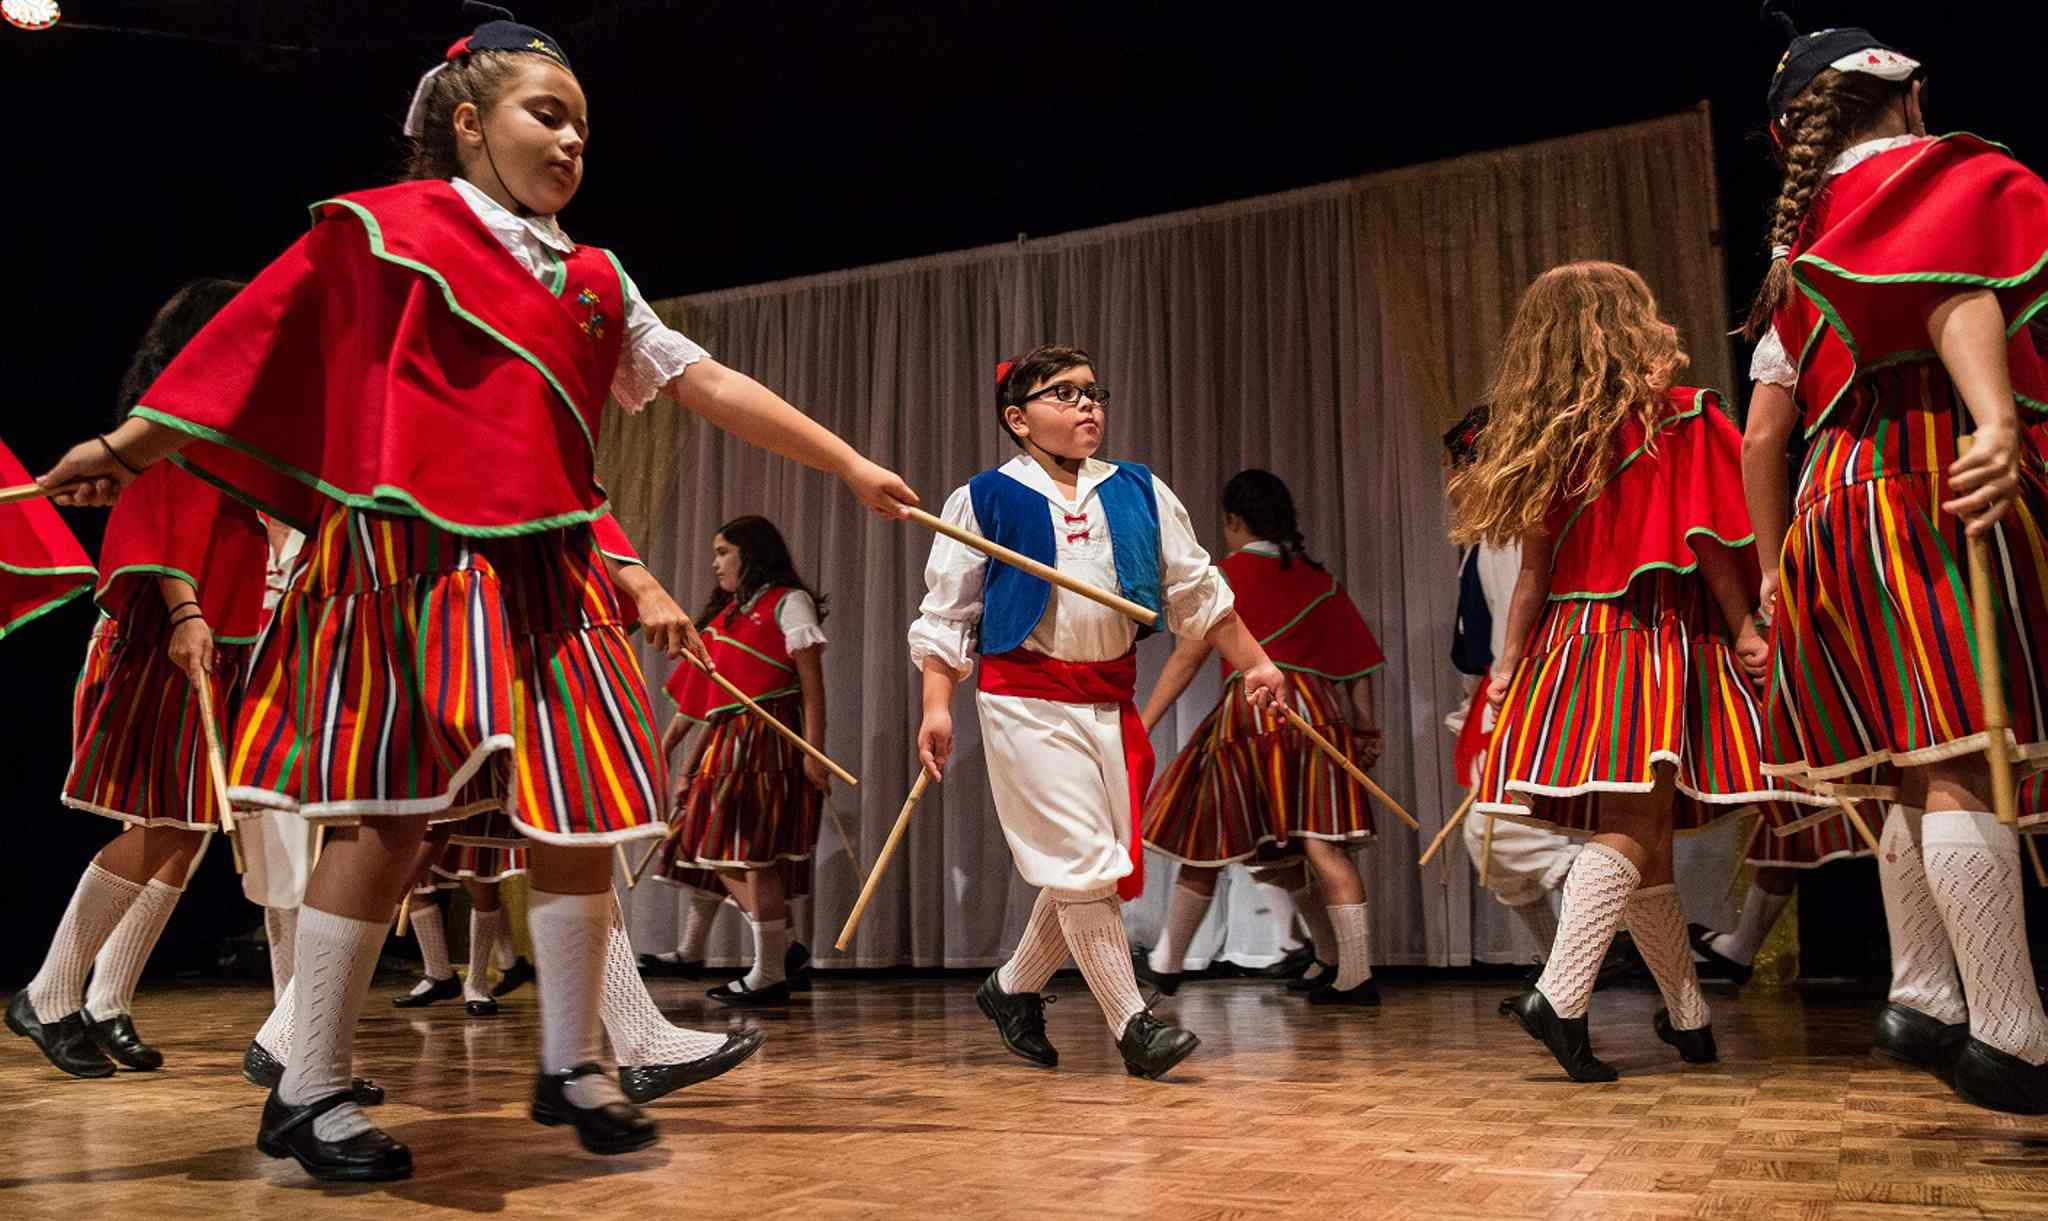 MIKE DEAL / WINNIPEG FREE PRESS Ben MacPhee-Sigurdson takes us on a tour of Folklorama pavilion's to sample various drinks and food. Young dancers perform at the Pavilion of Portugal Tuesday evening. 160809 - Tuesday, August 09, 2016